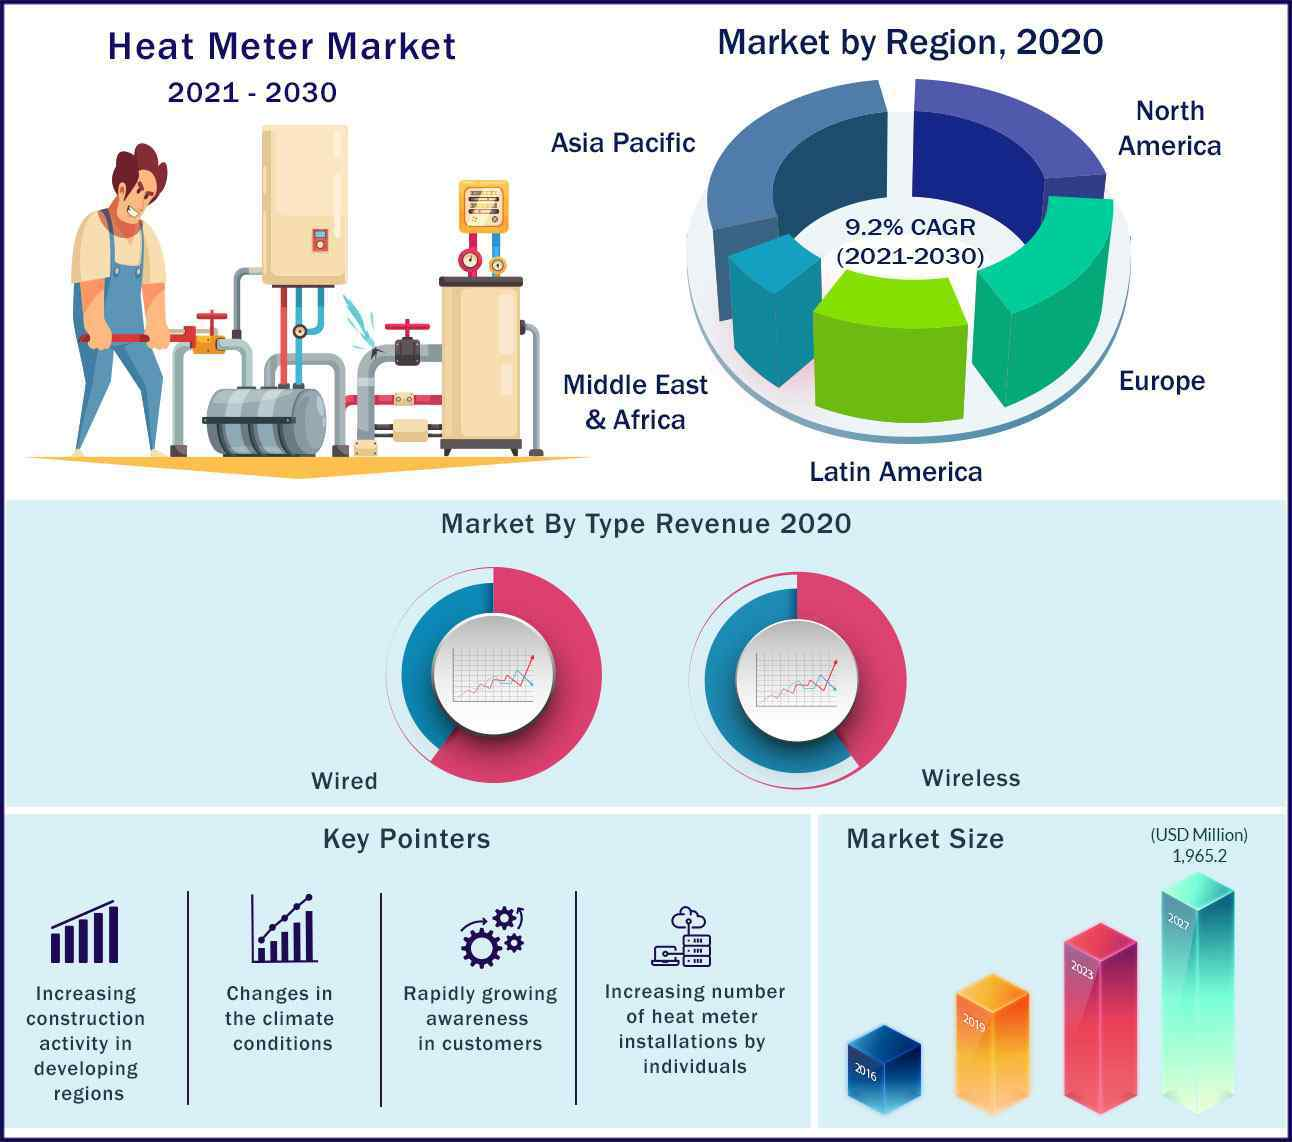 Global Heat Meter Market 2021-2030